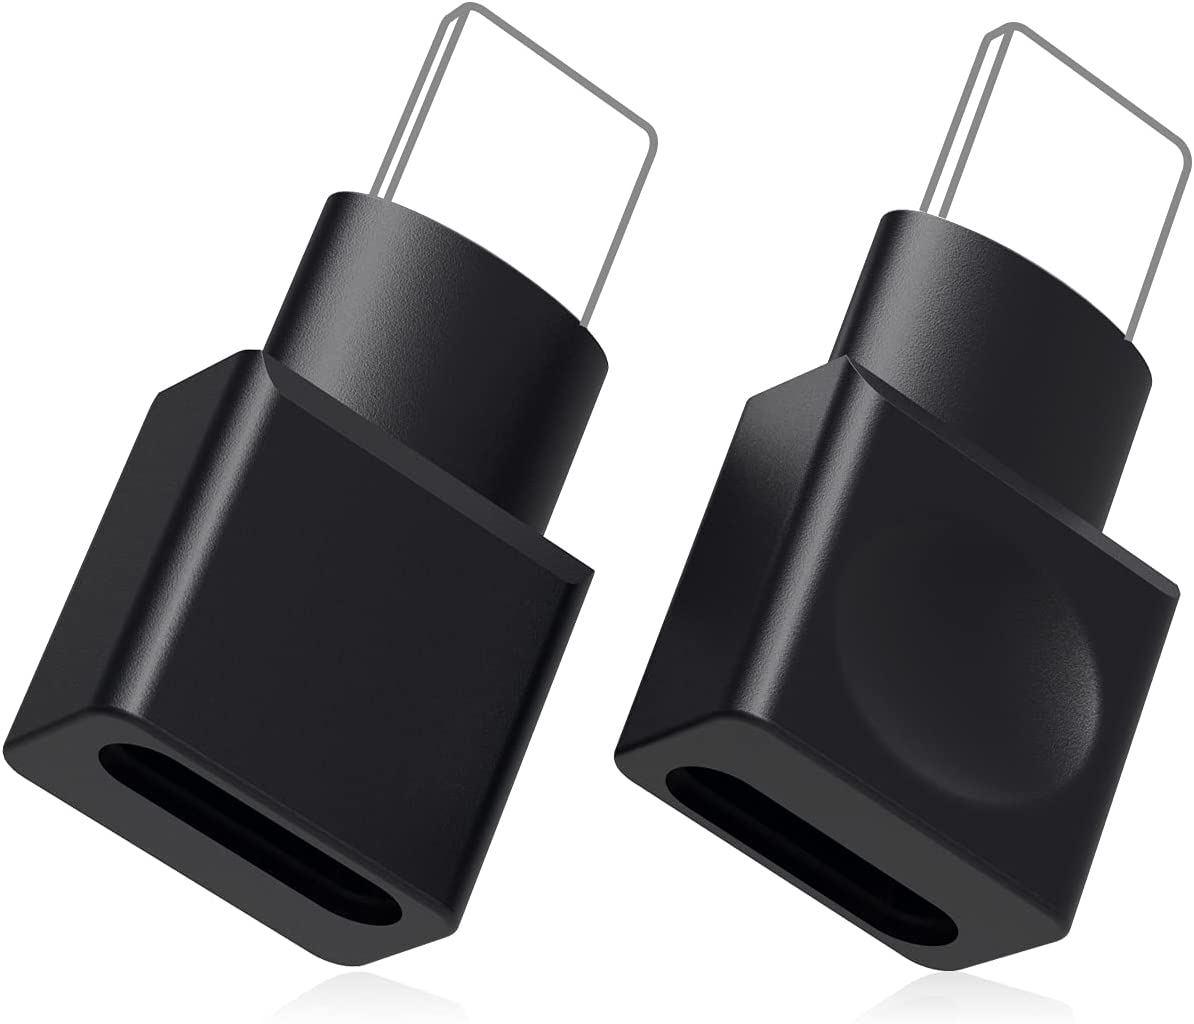 CHANG XU 2PCS Docking Extender Connector Adapter Seats Female to Male. Transfer Video, Audio, Picture, Photo, Music, Data and Power Charger Adapter. (Black)